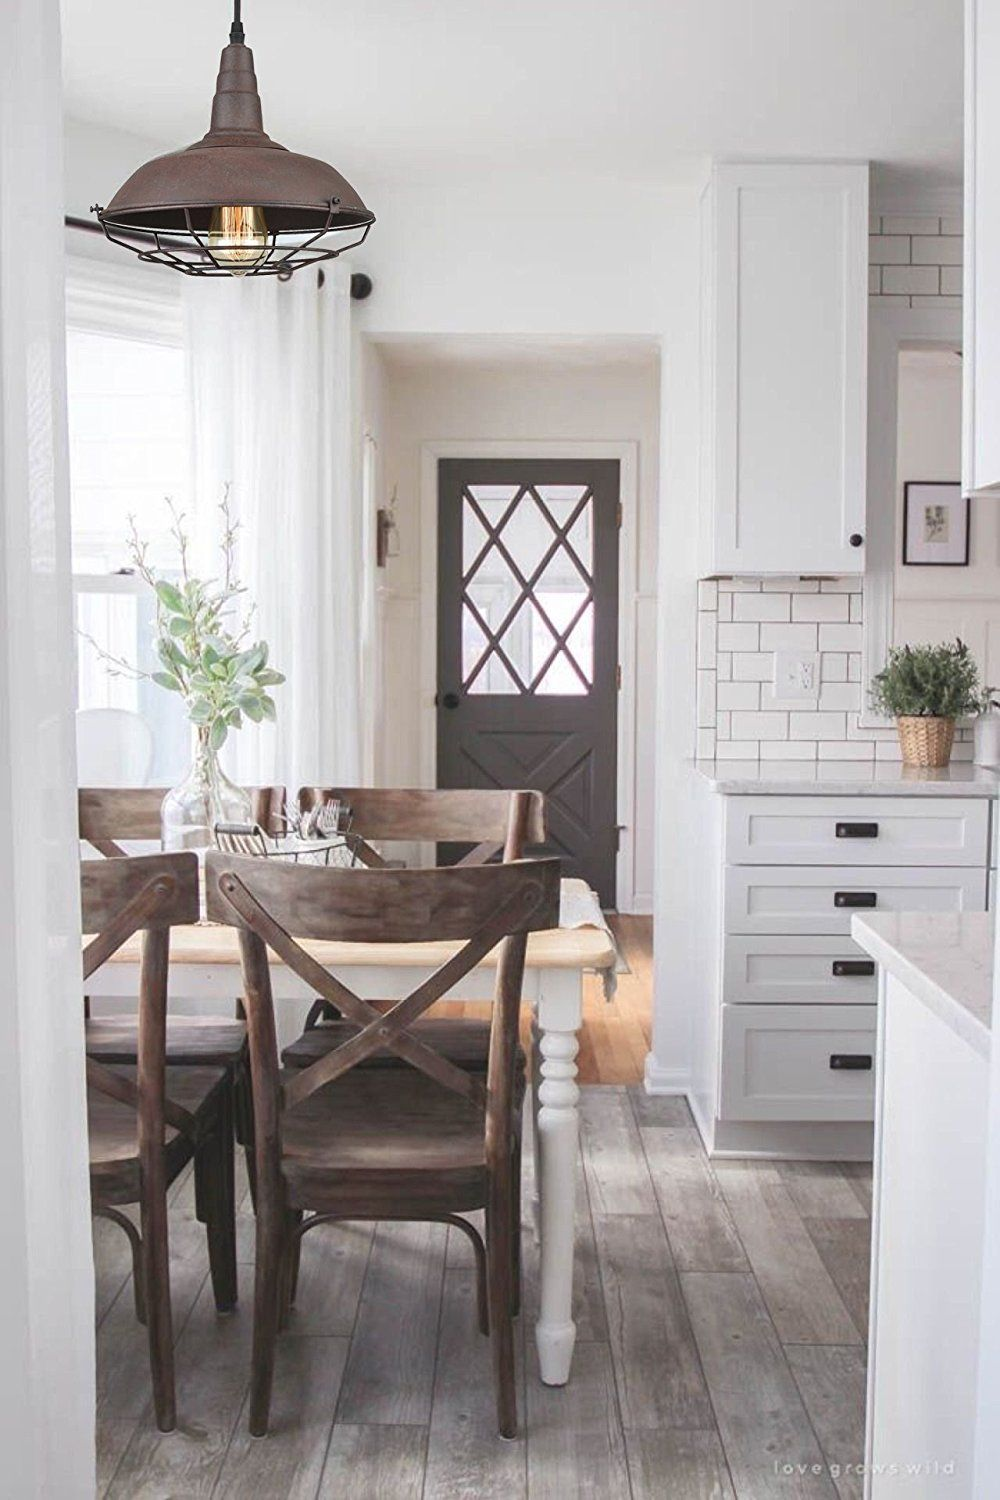 Farmhouse Lighting what you need to know Home decor